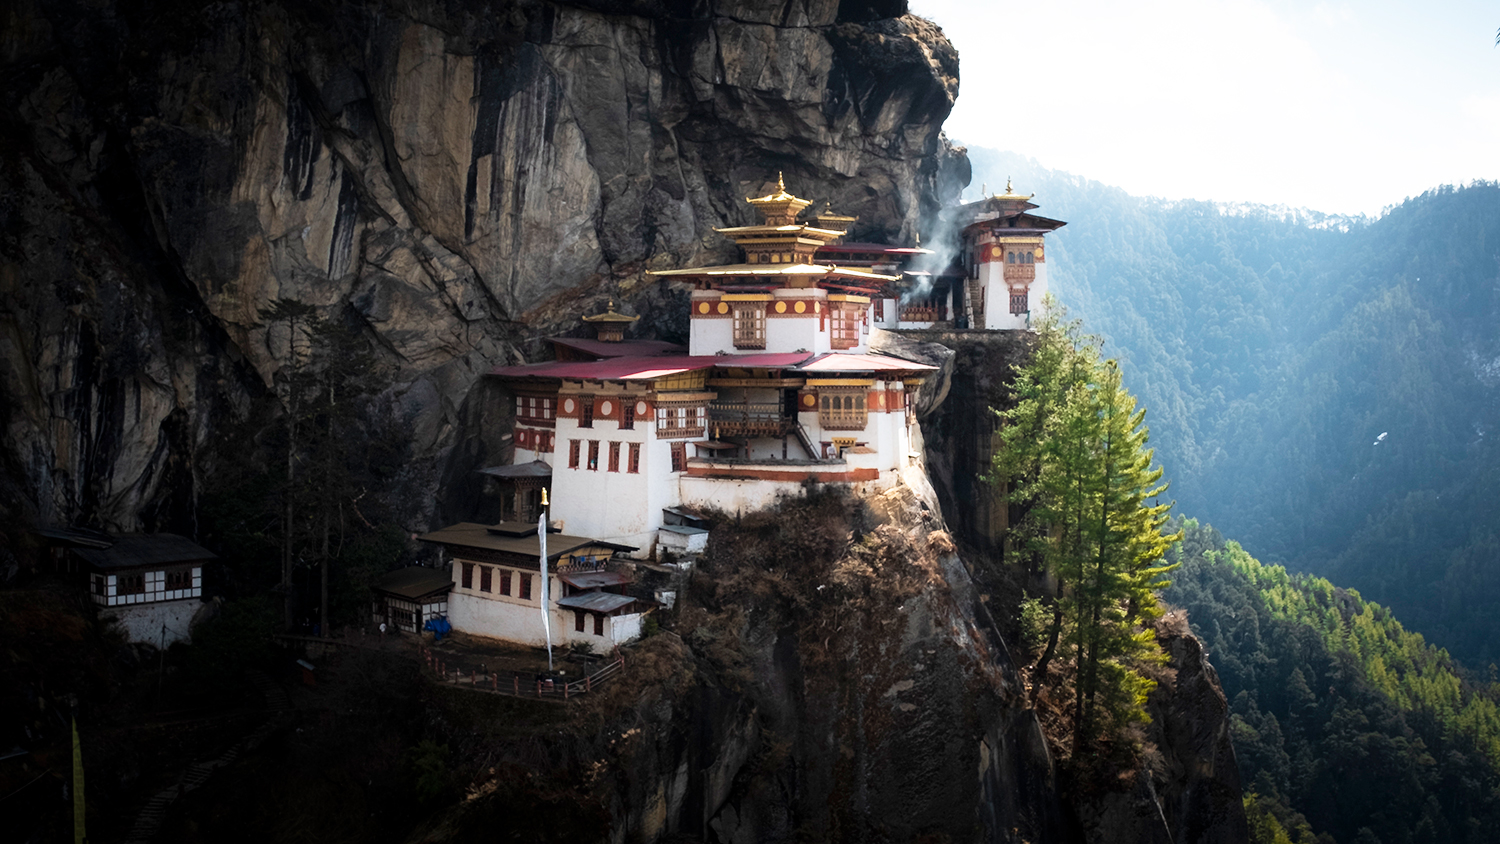 Arguably the most famous spot in Bhutan, Taktsang Monastery (Tiger's nest), Paro